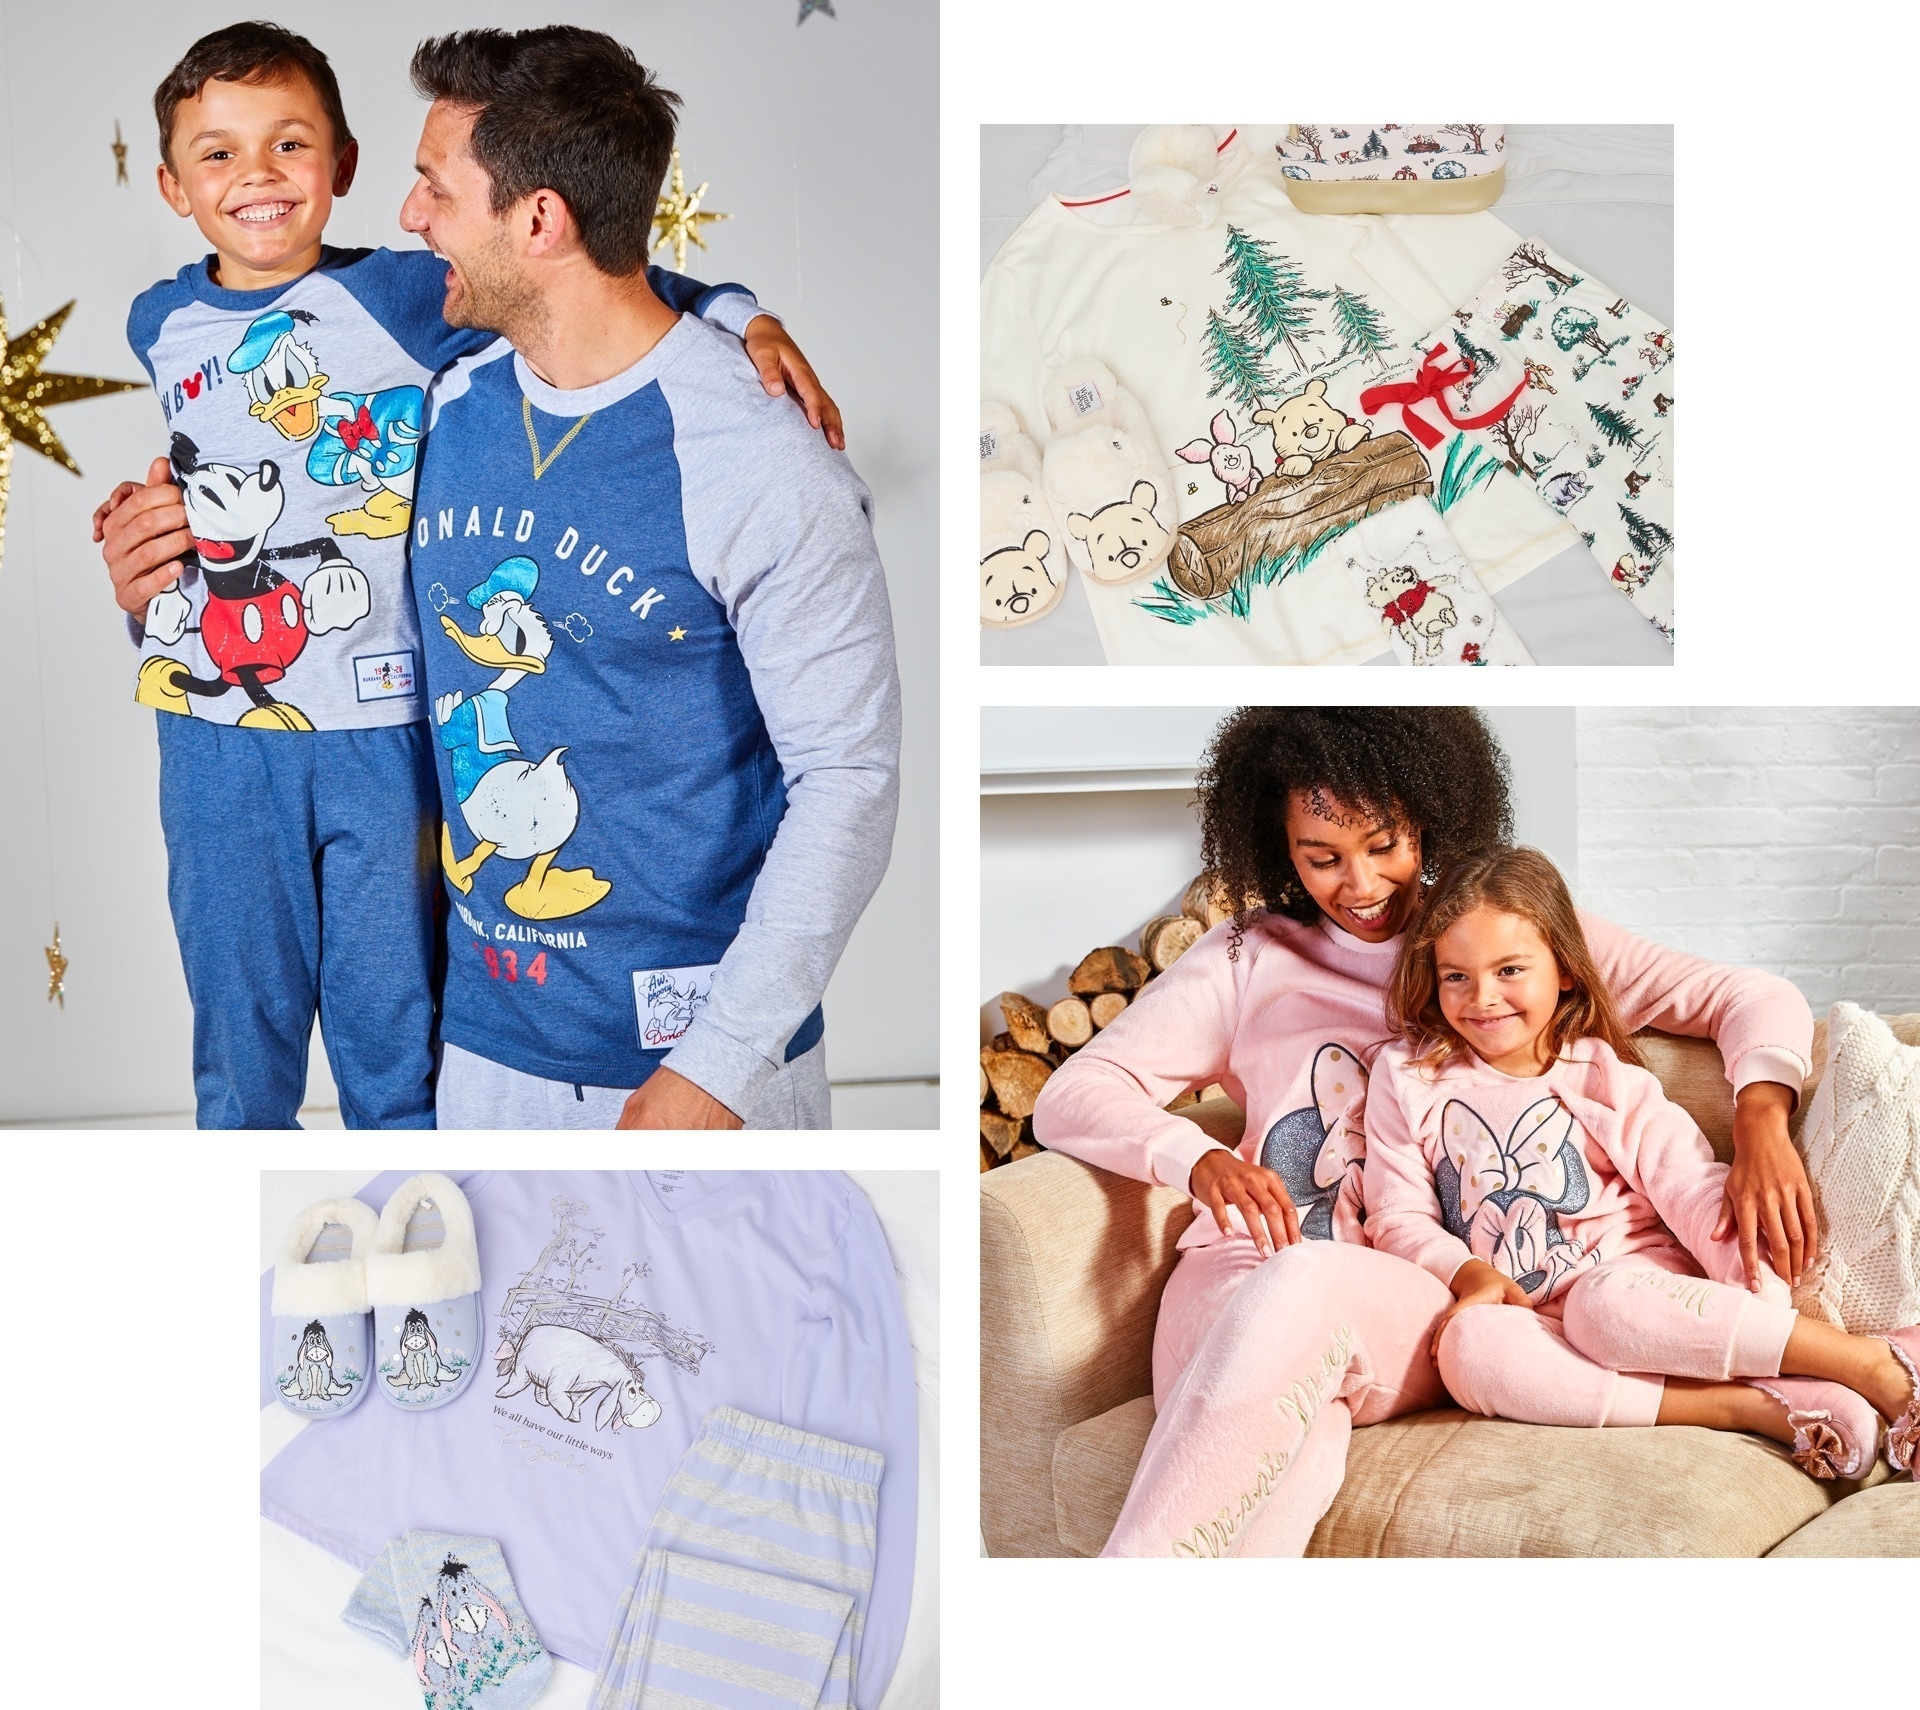 A selection of adults and kids wearing Disney pyjamas